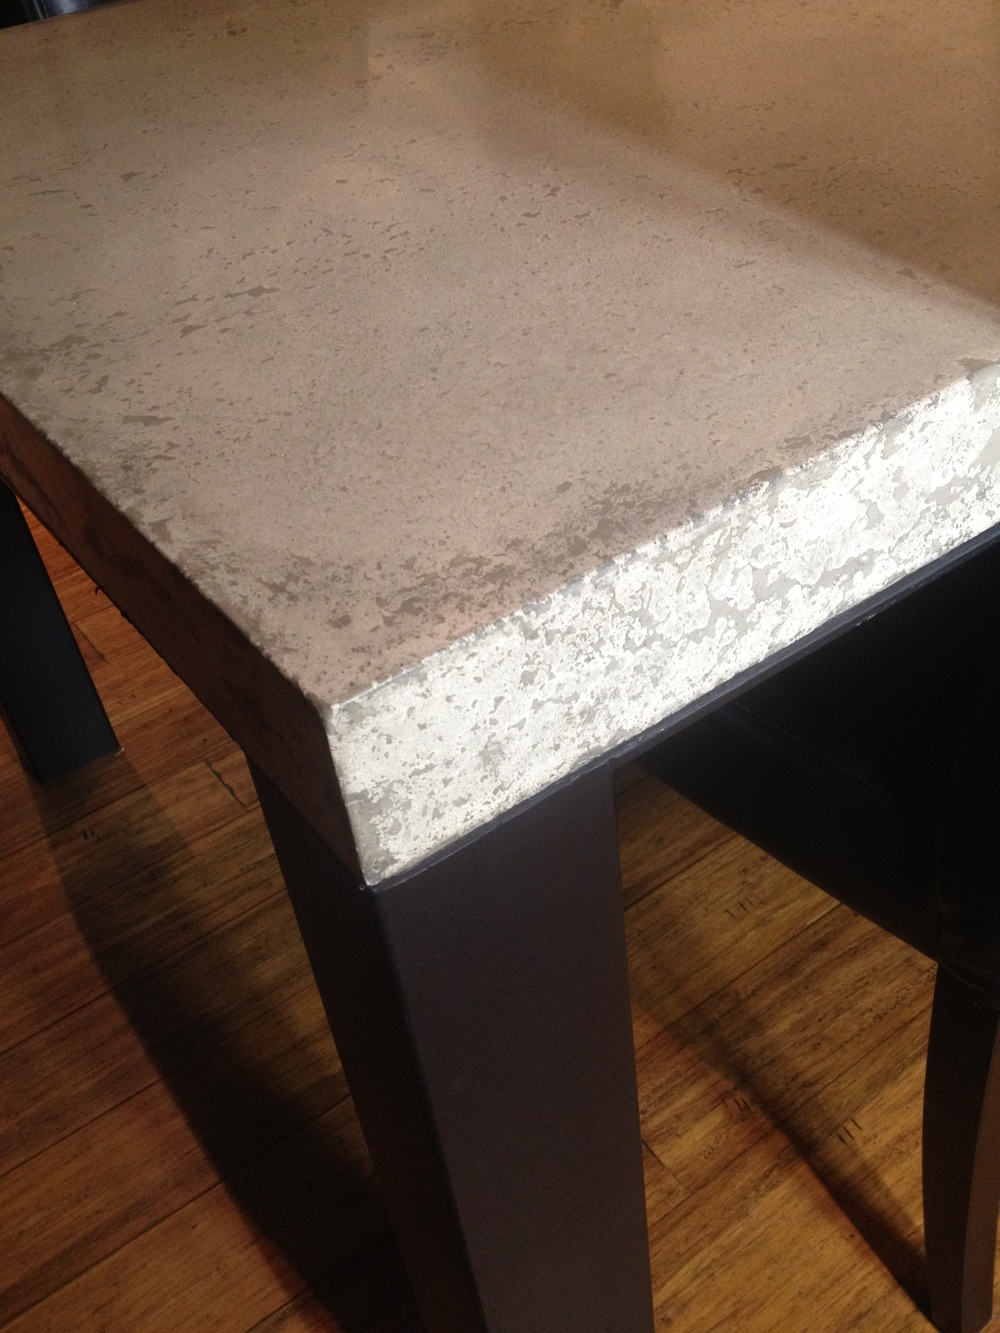 Dry-Packed Concrete Tabletop